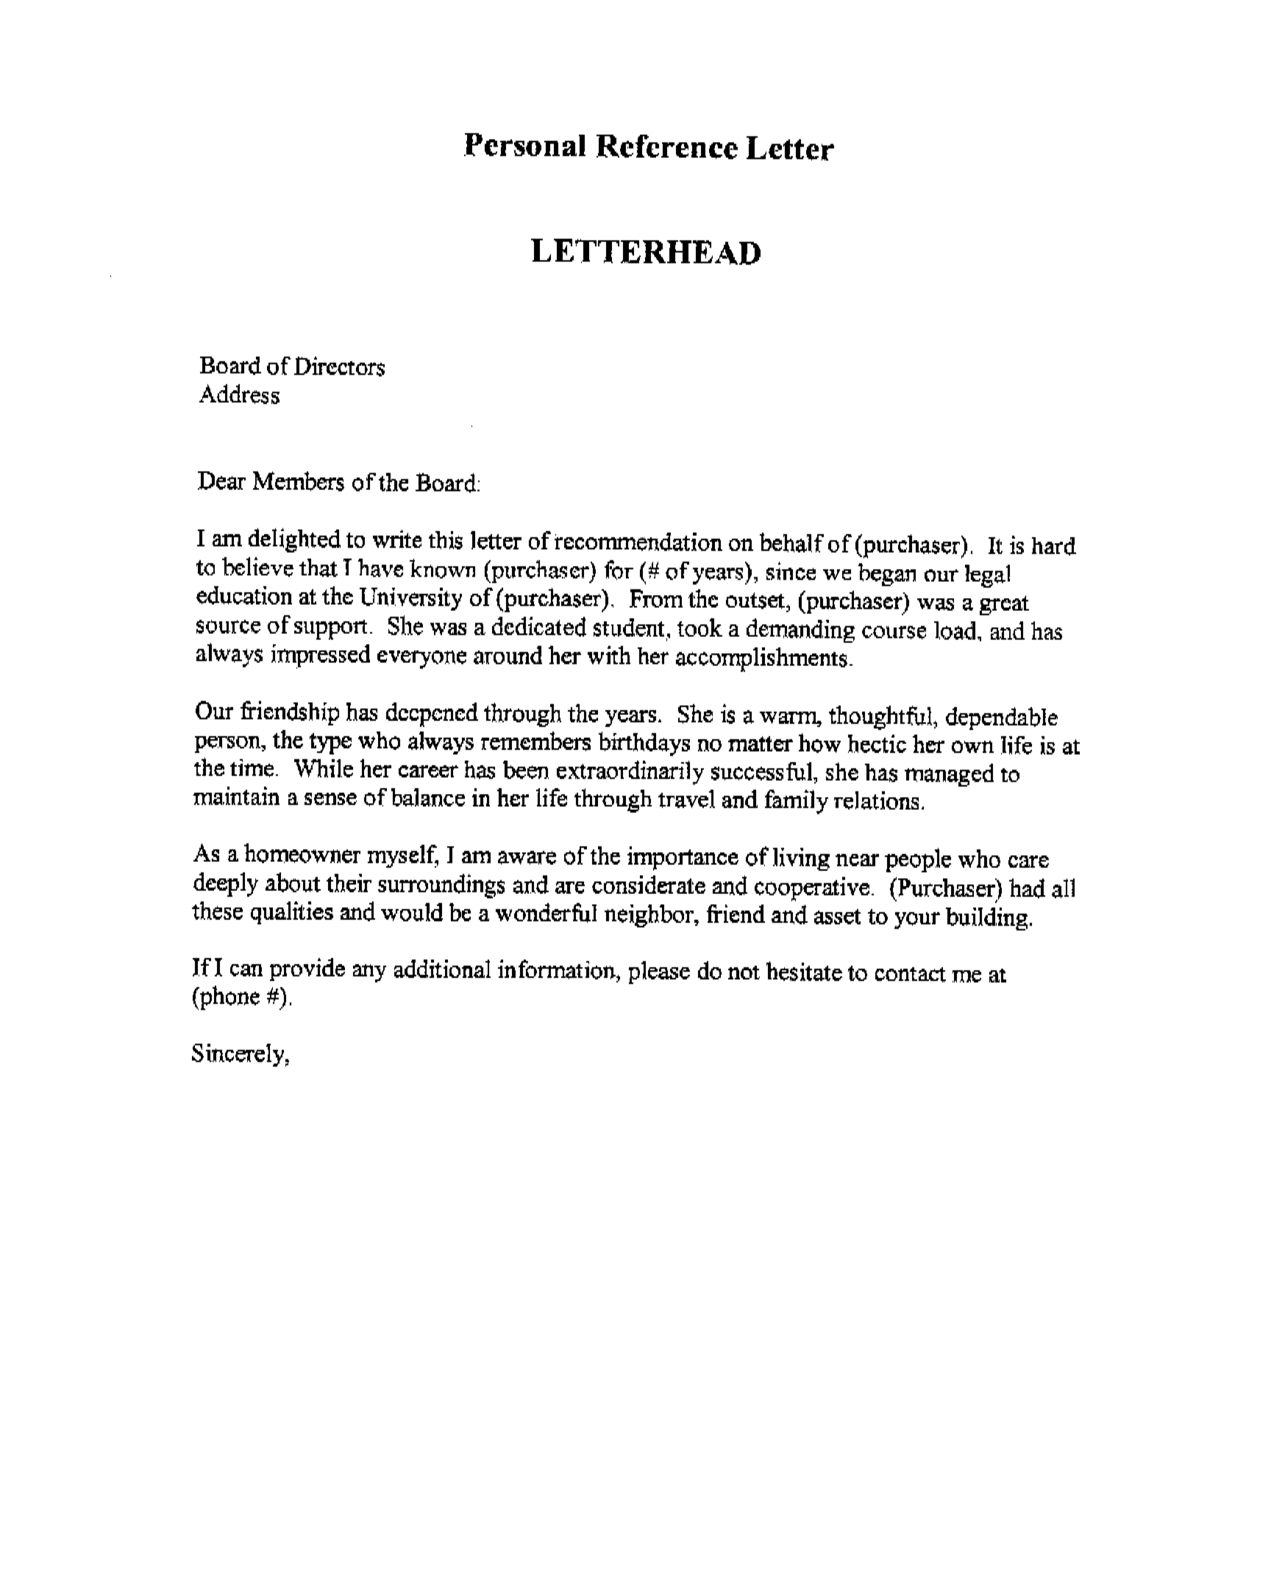 Professional recommendation letter this is an example of a professional recommendation letter this is an example of a professional recommendation written for an employee who is relocating thecheapjerseys